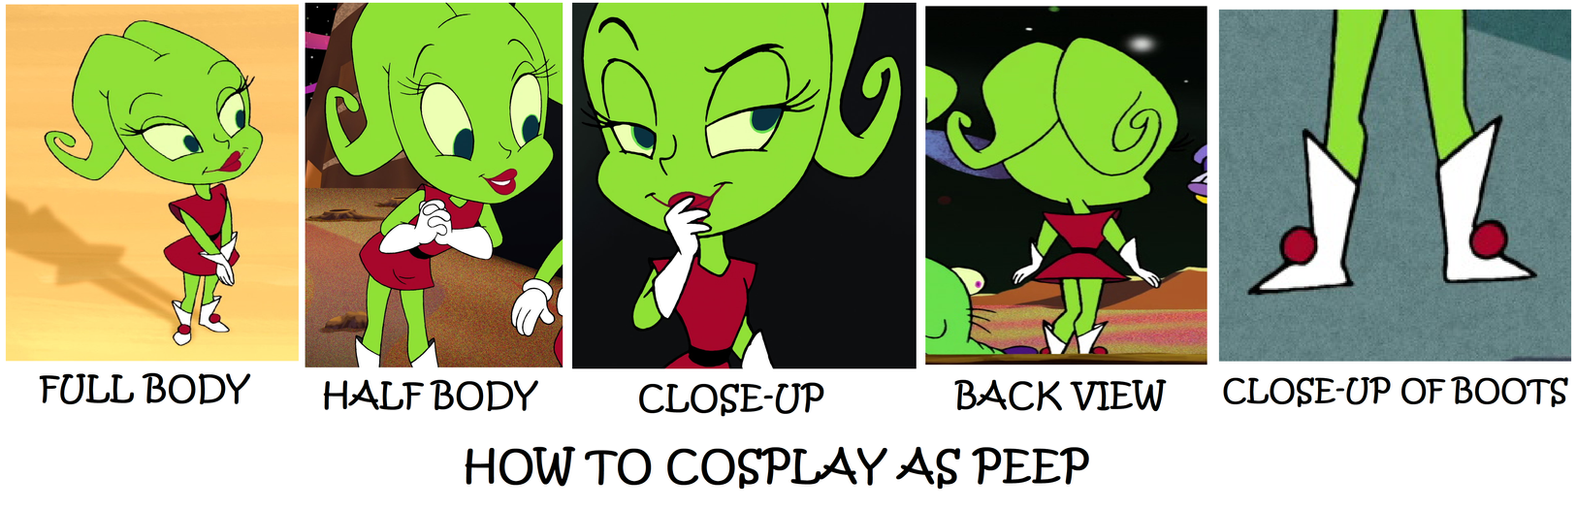 How to Cosplay as Peep by Prentis-65